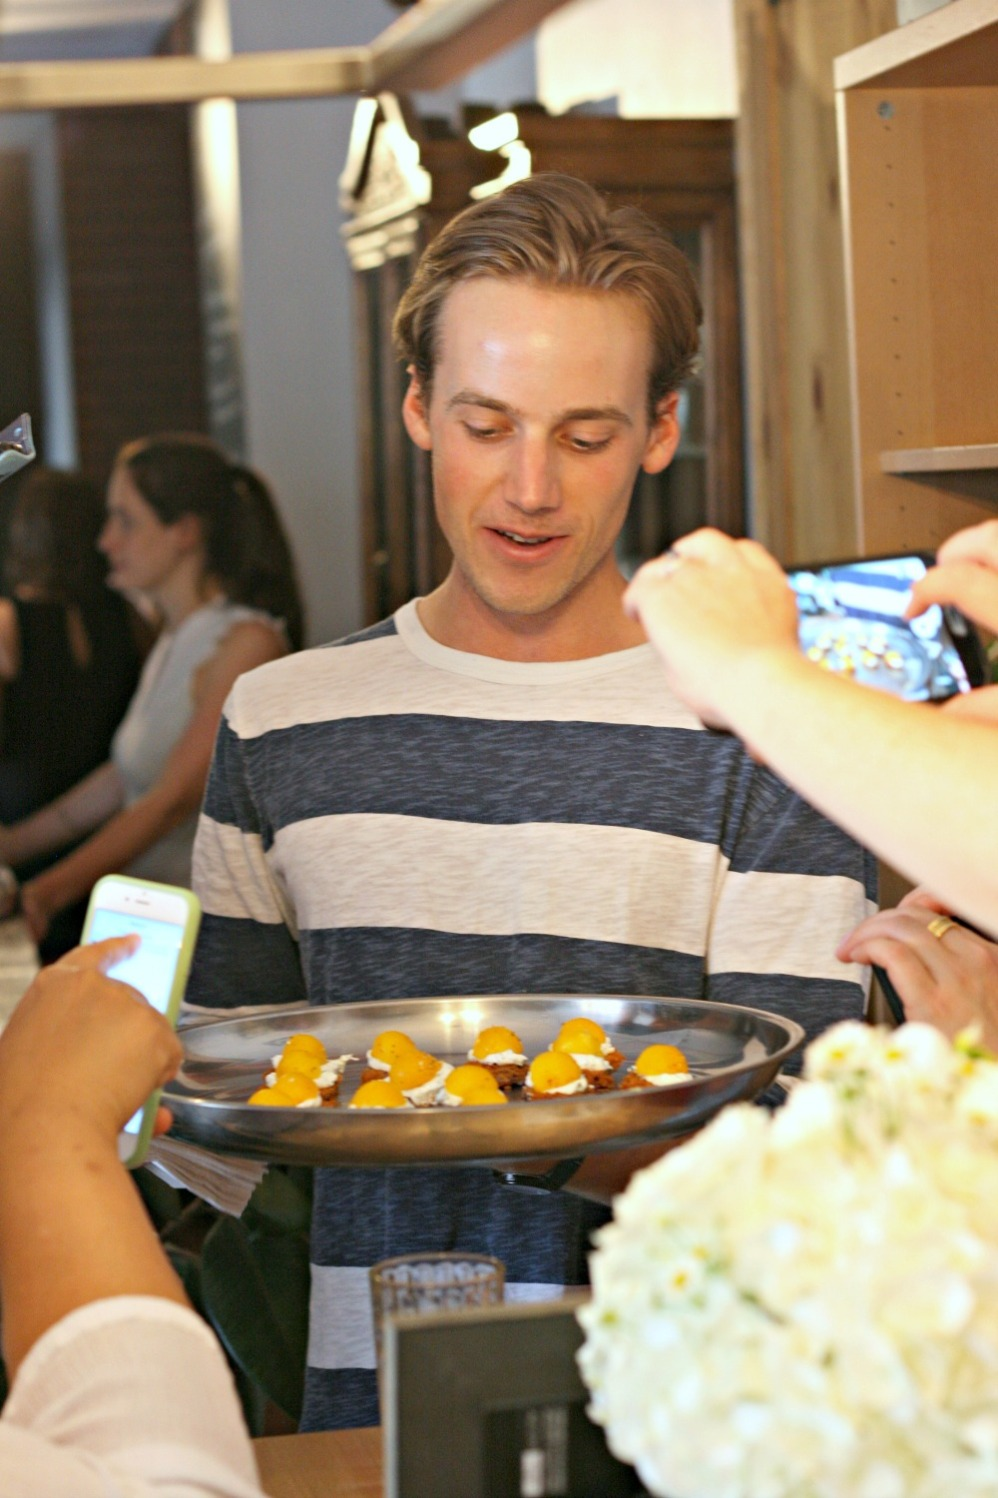 farm to chef serving fried eggplant topped with herbed yogurt and smoked egg yolk